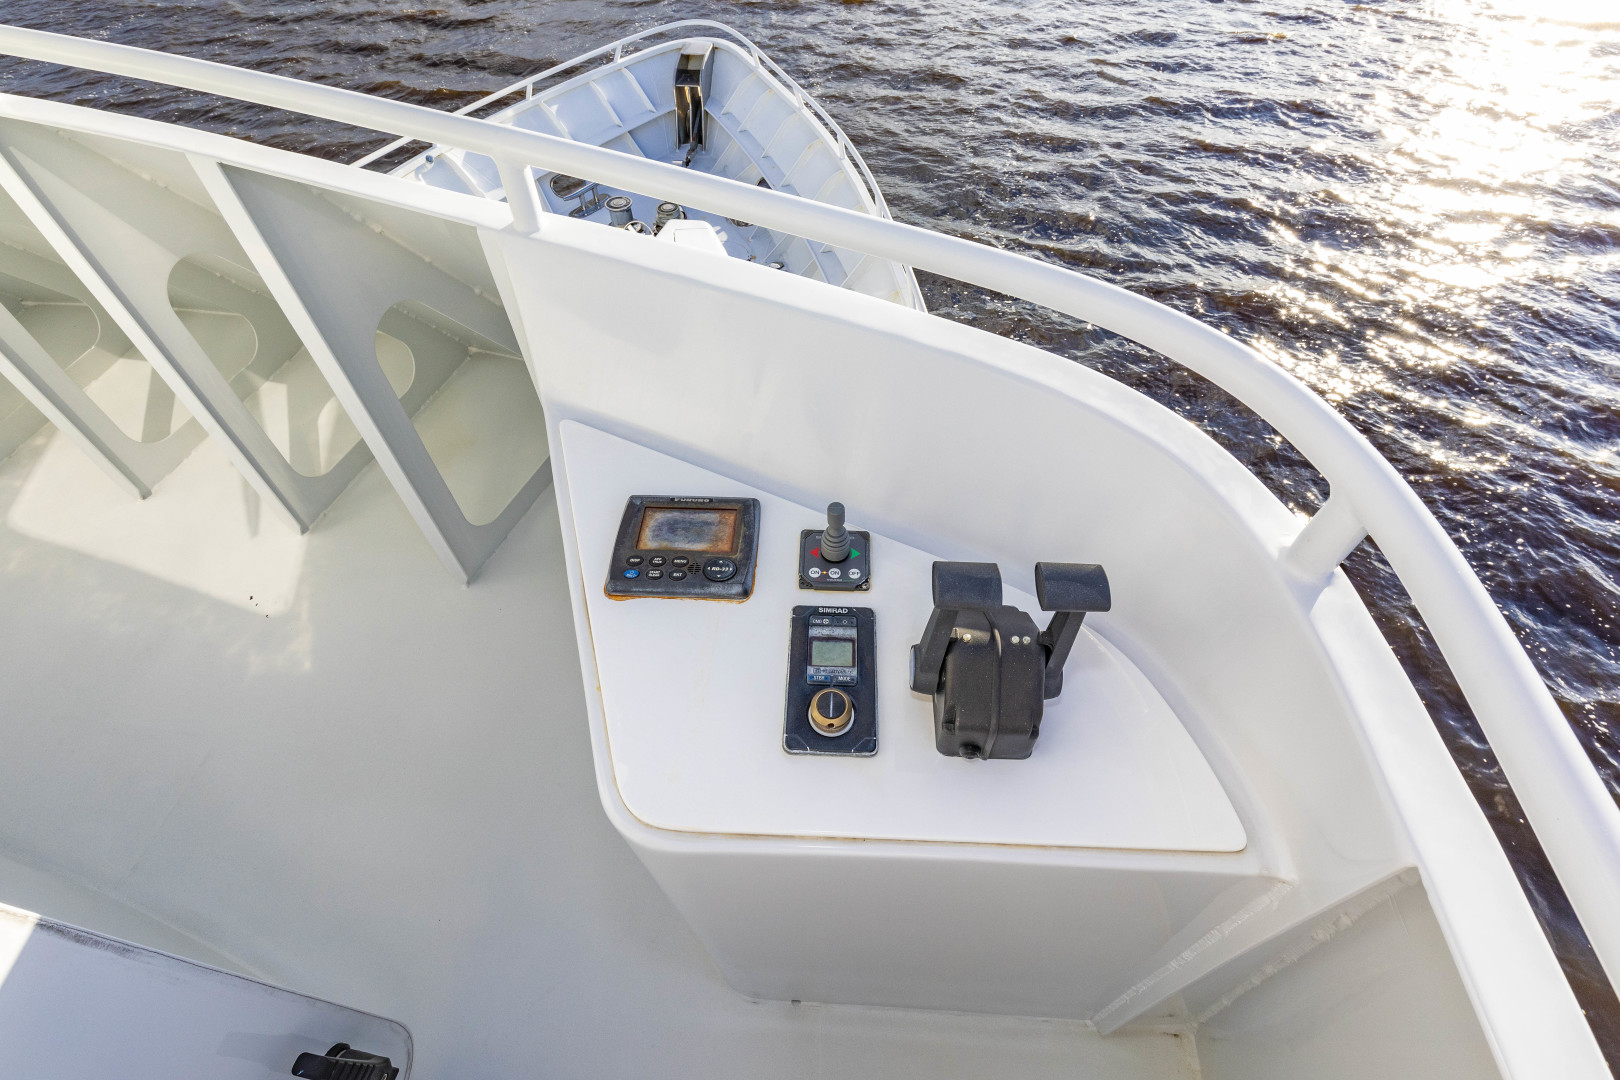 GlassTech-Expedition Yacht 2018-Reset Stuart-Florida-United States-Stbd Wing Controls-1568642 | Thumbnail